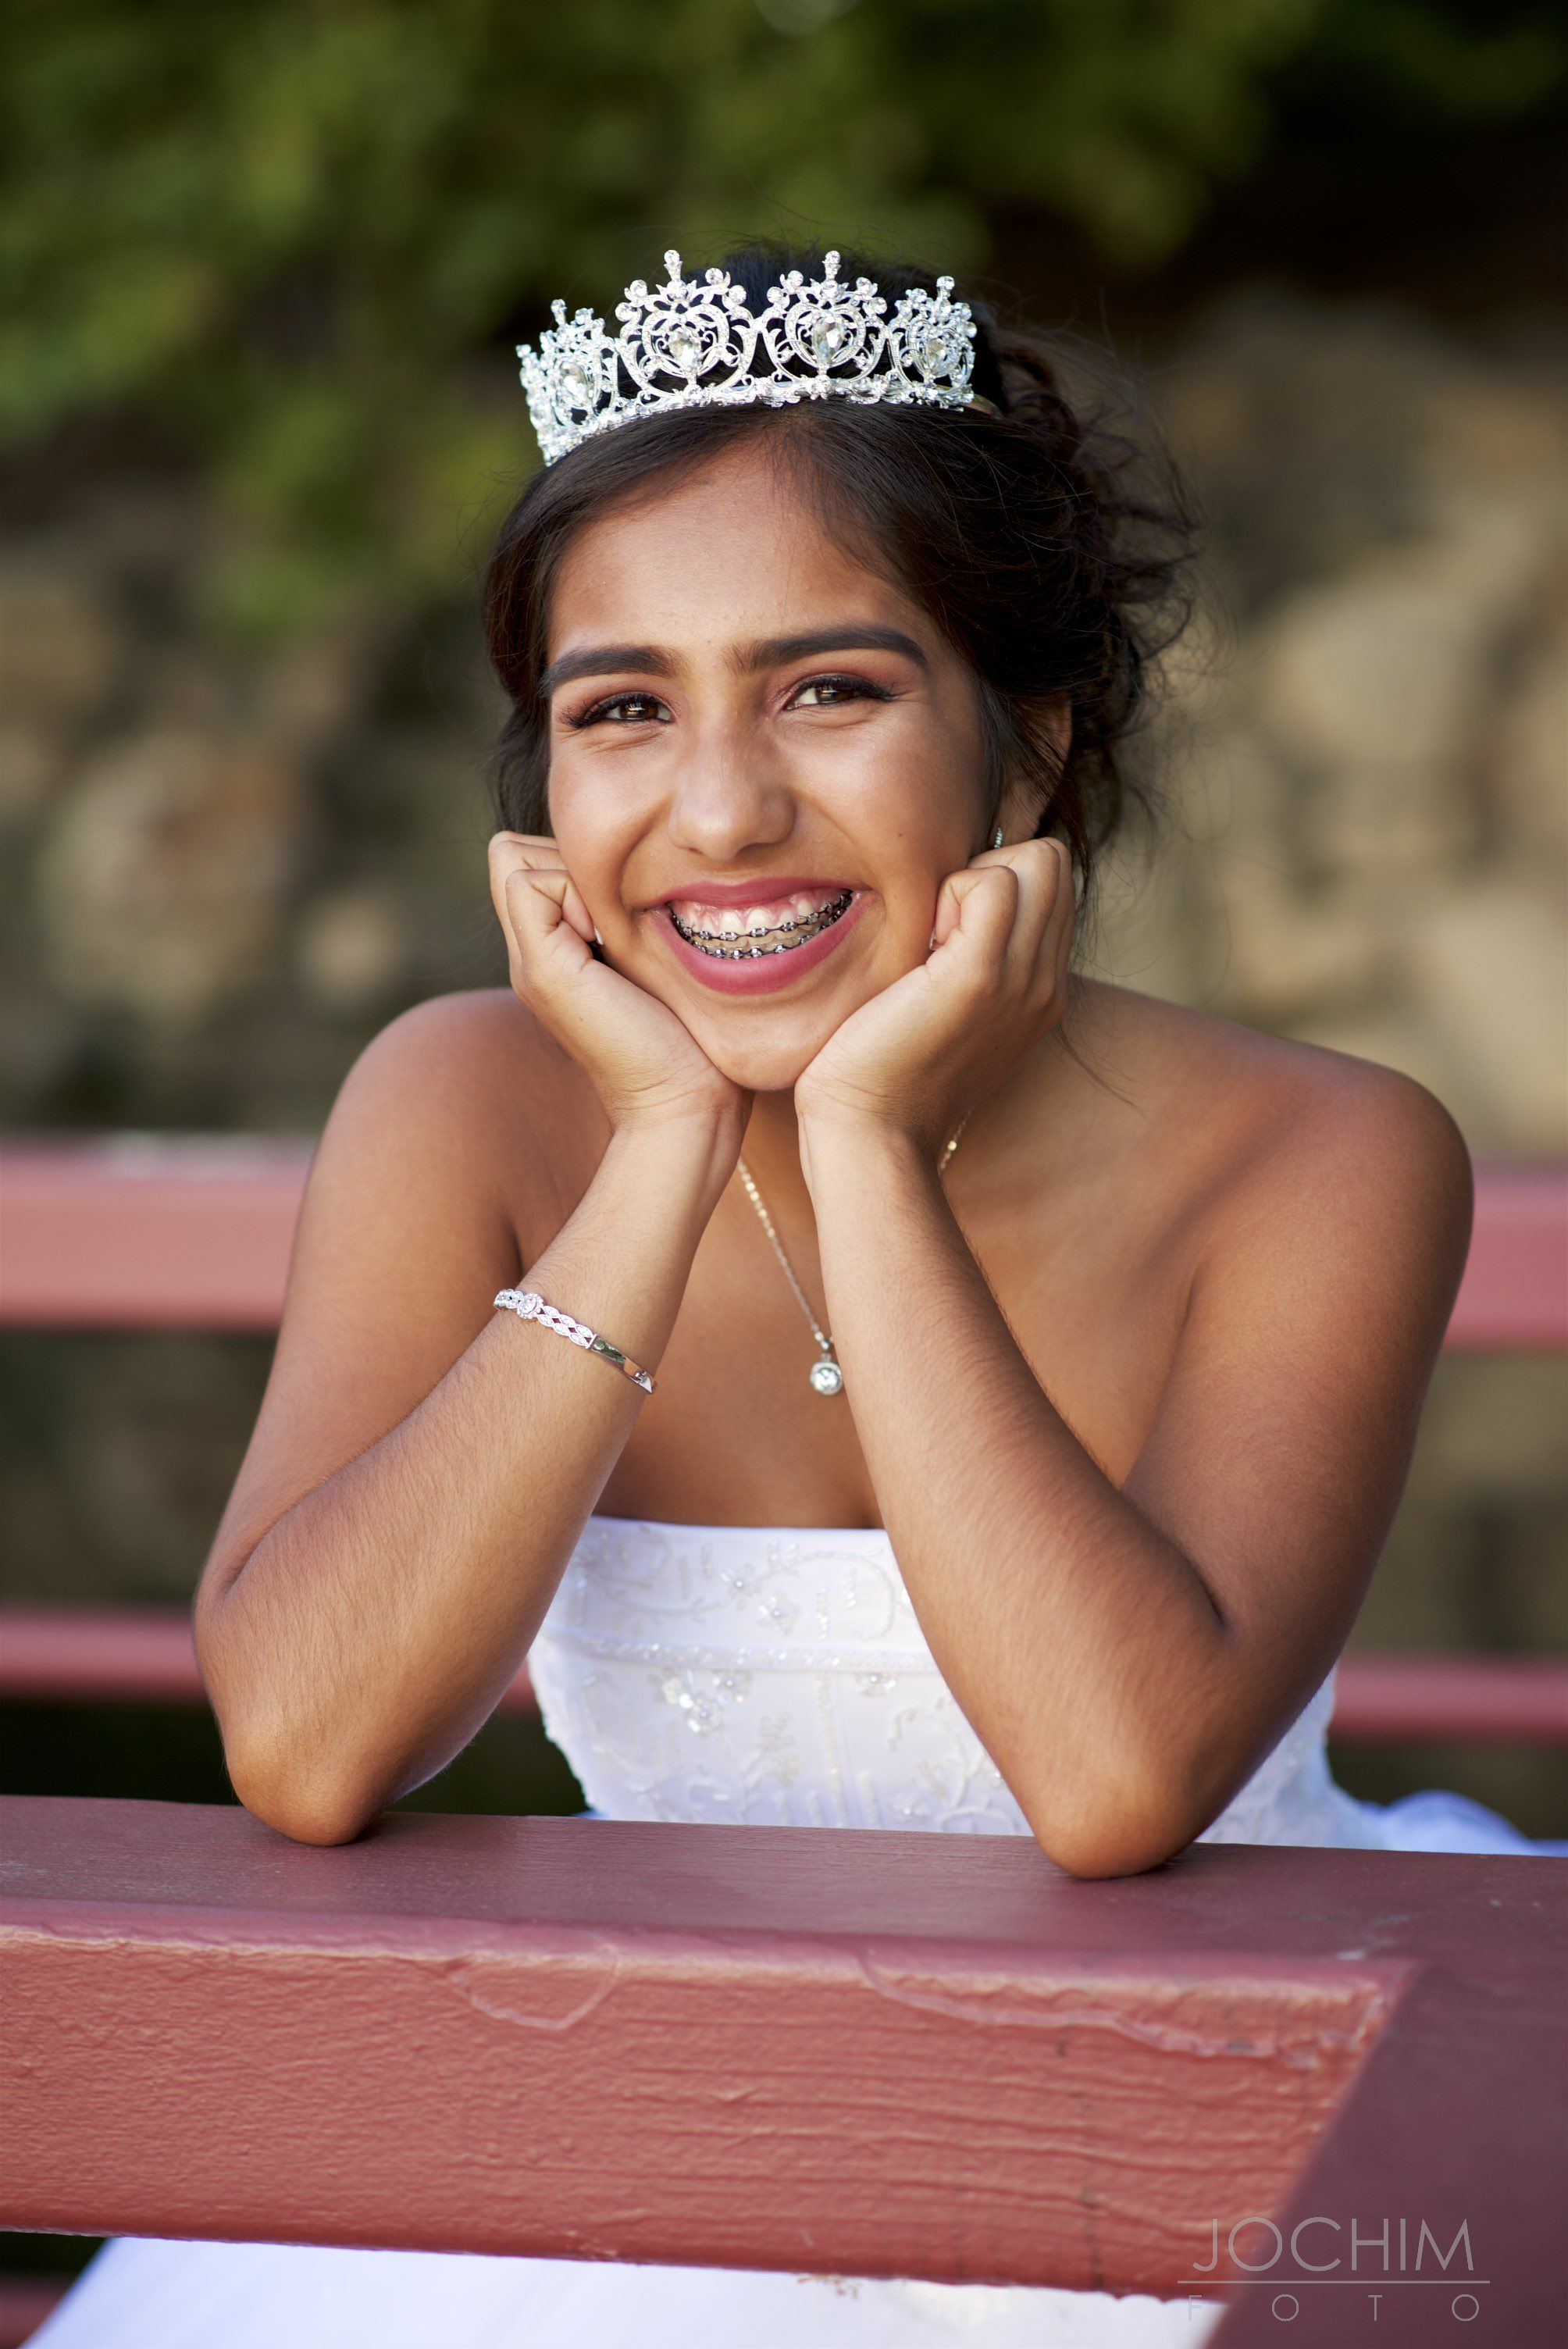 Quinceañera Photography | La Habra Quinceañera Photographer | Orange County